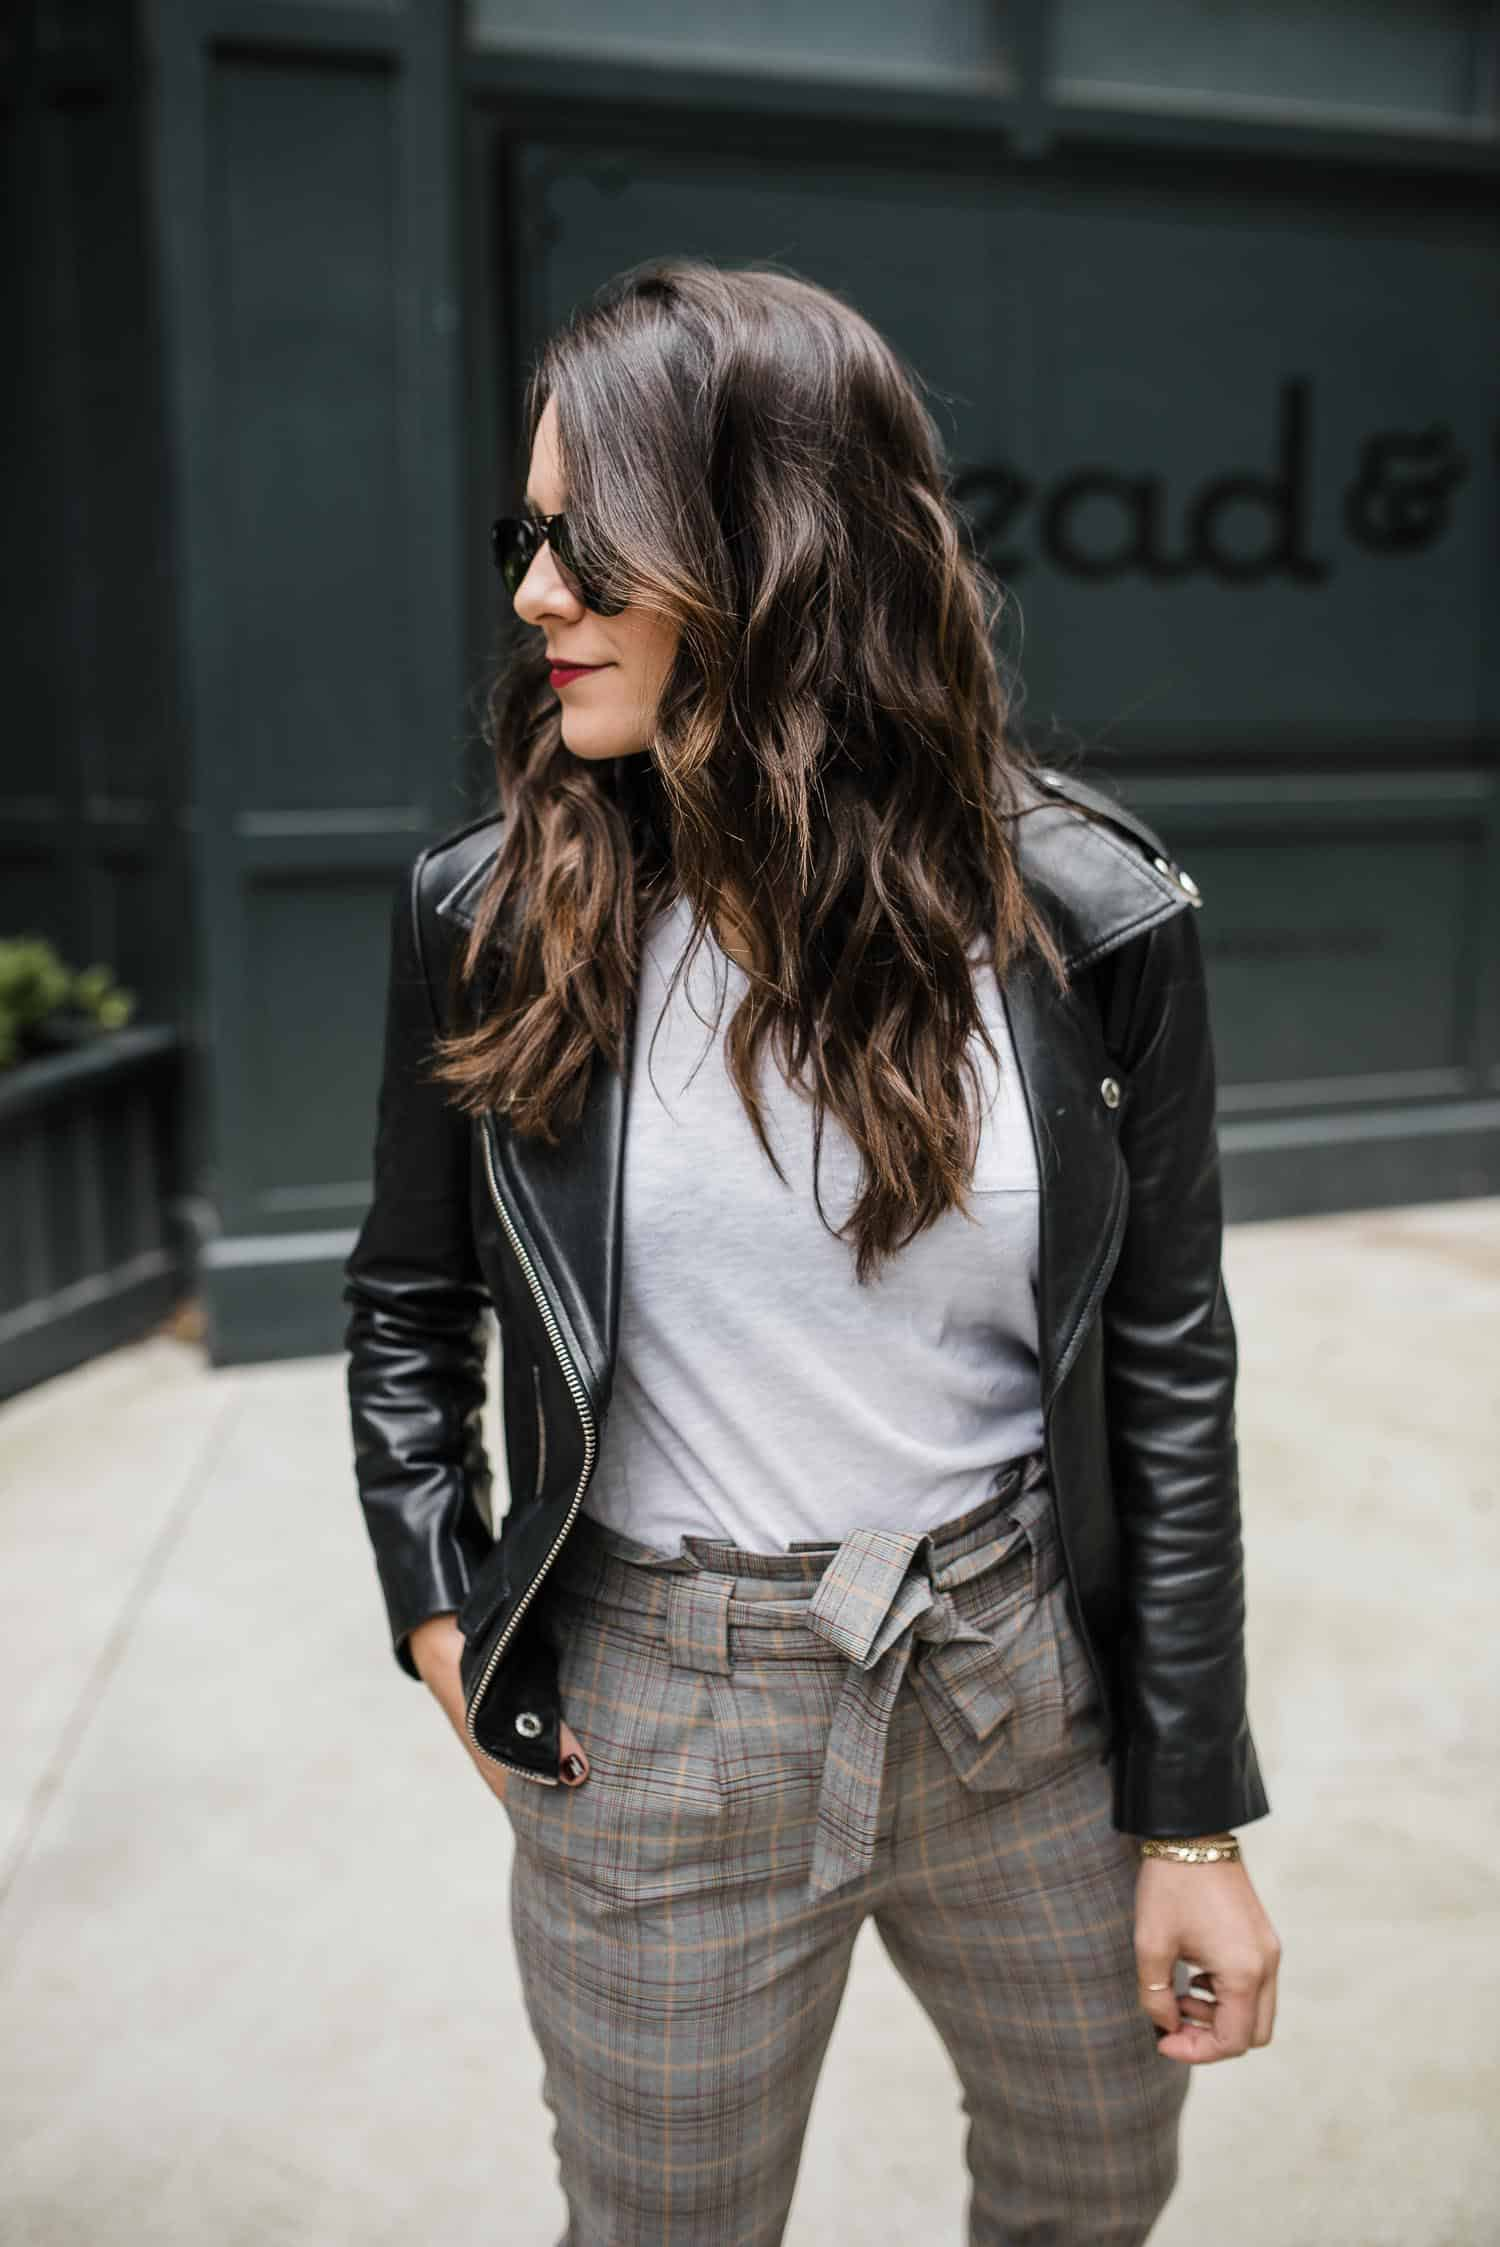 Express Trousers • Caslon White Tee • Leather Jacket • Ray-Ban Aviators • Beautycounter Lipstick in Girls' Night • Gigi New York Circle Bag